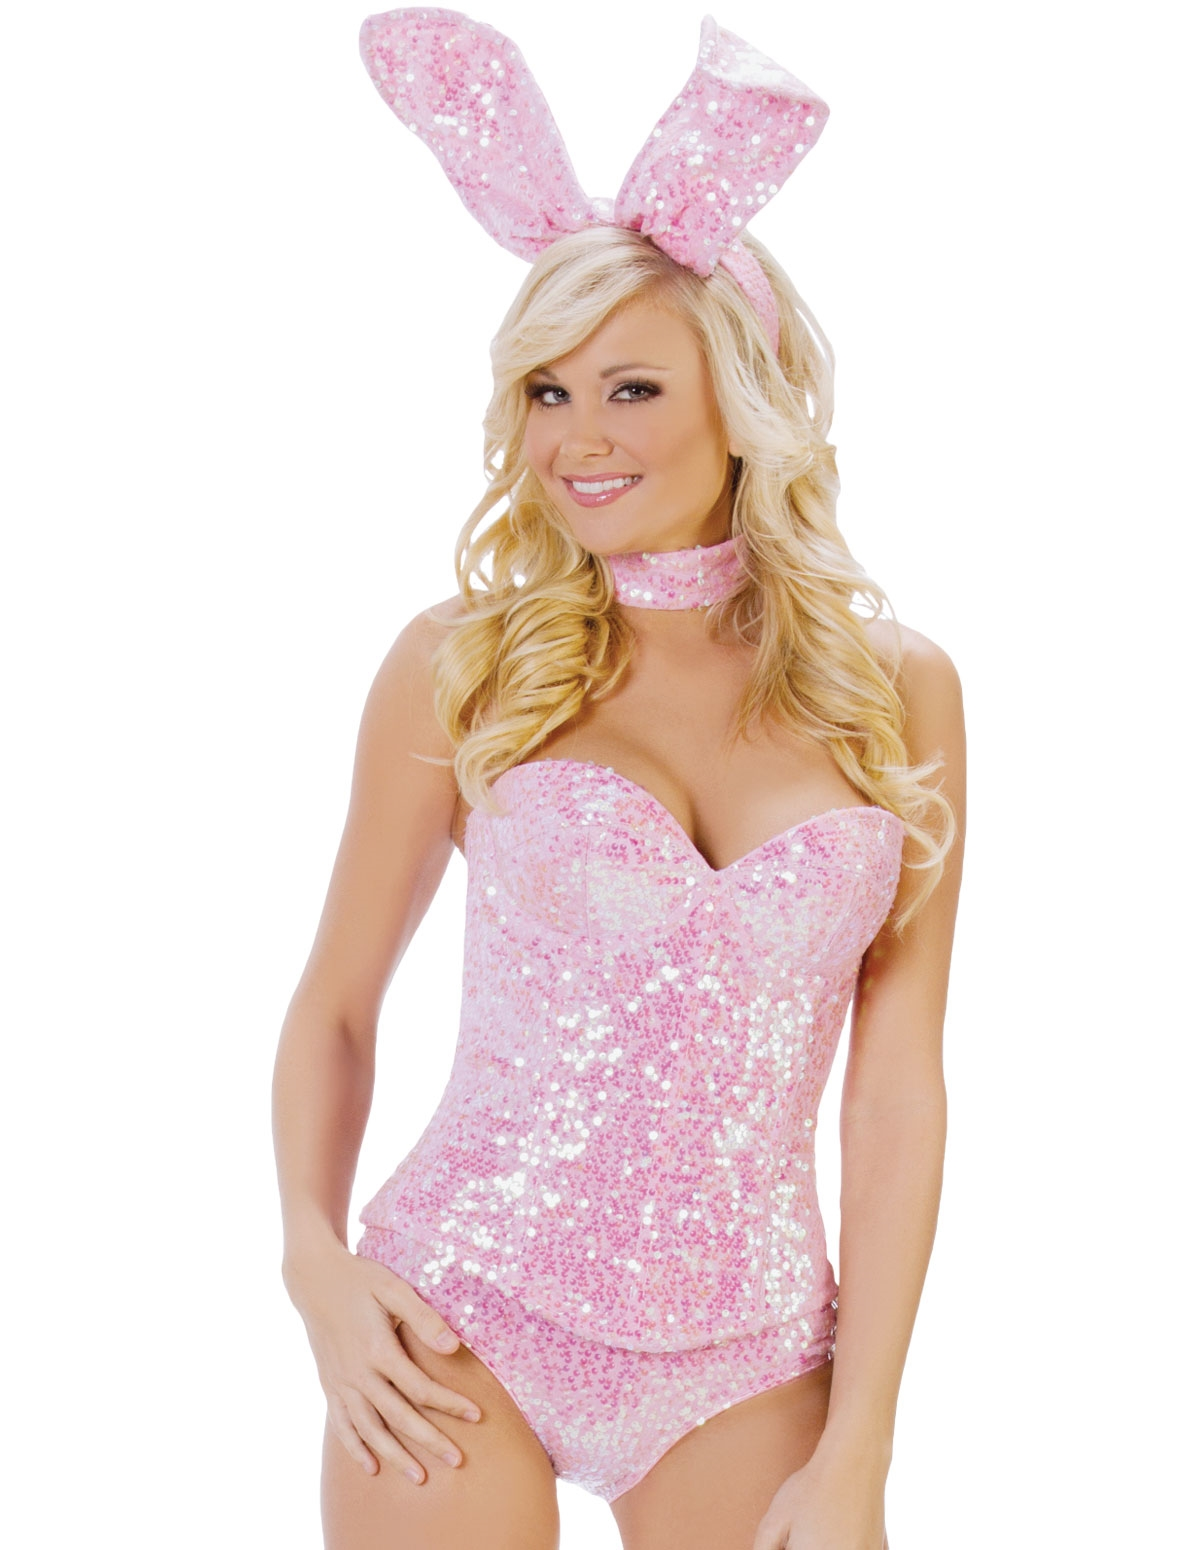 Party Bunny Costume Pink